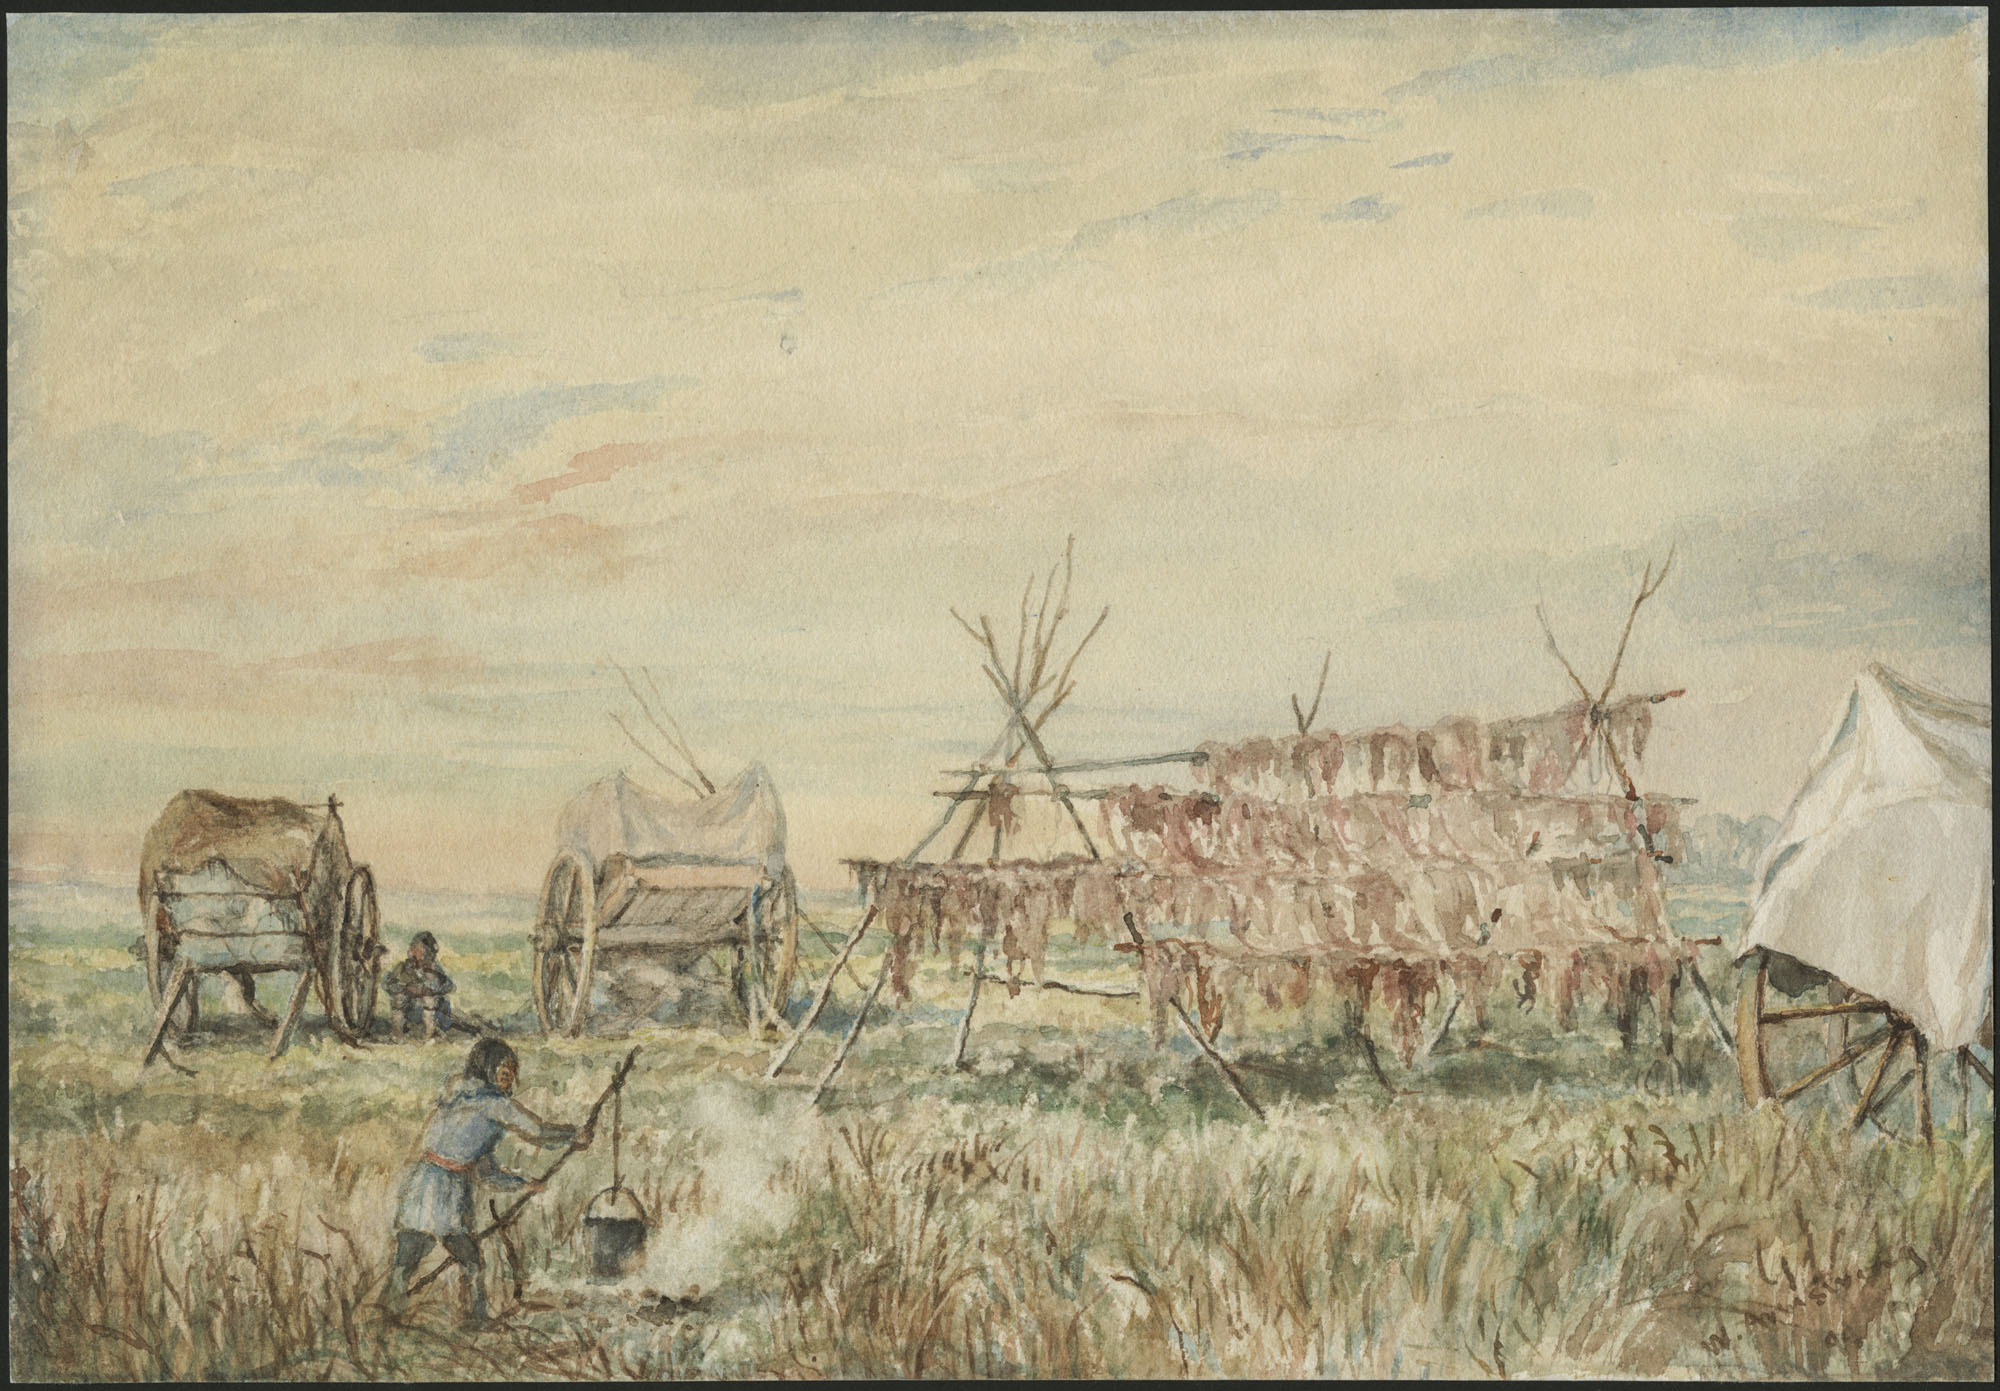 Watercolour with scraping out over pencil depicting a prairie landscape with wooden structures holding strips of drying buffalo meat. A woman holding a bucket attached to a large stick over a fire is in the foreground, while another figure sitting between two Red River carts is in the background on the left.